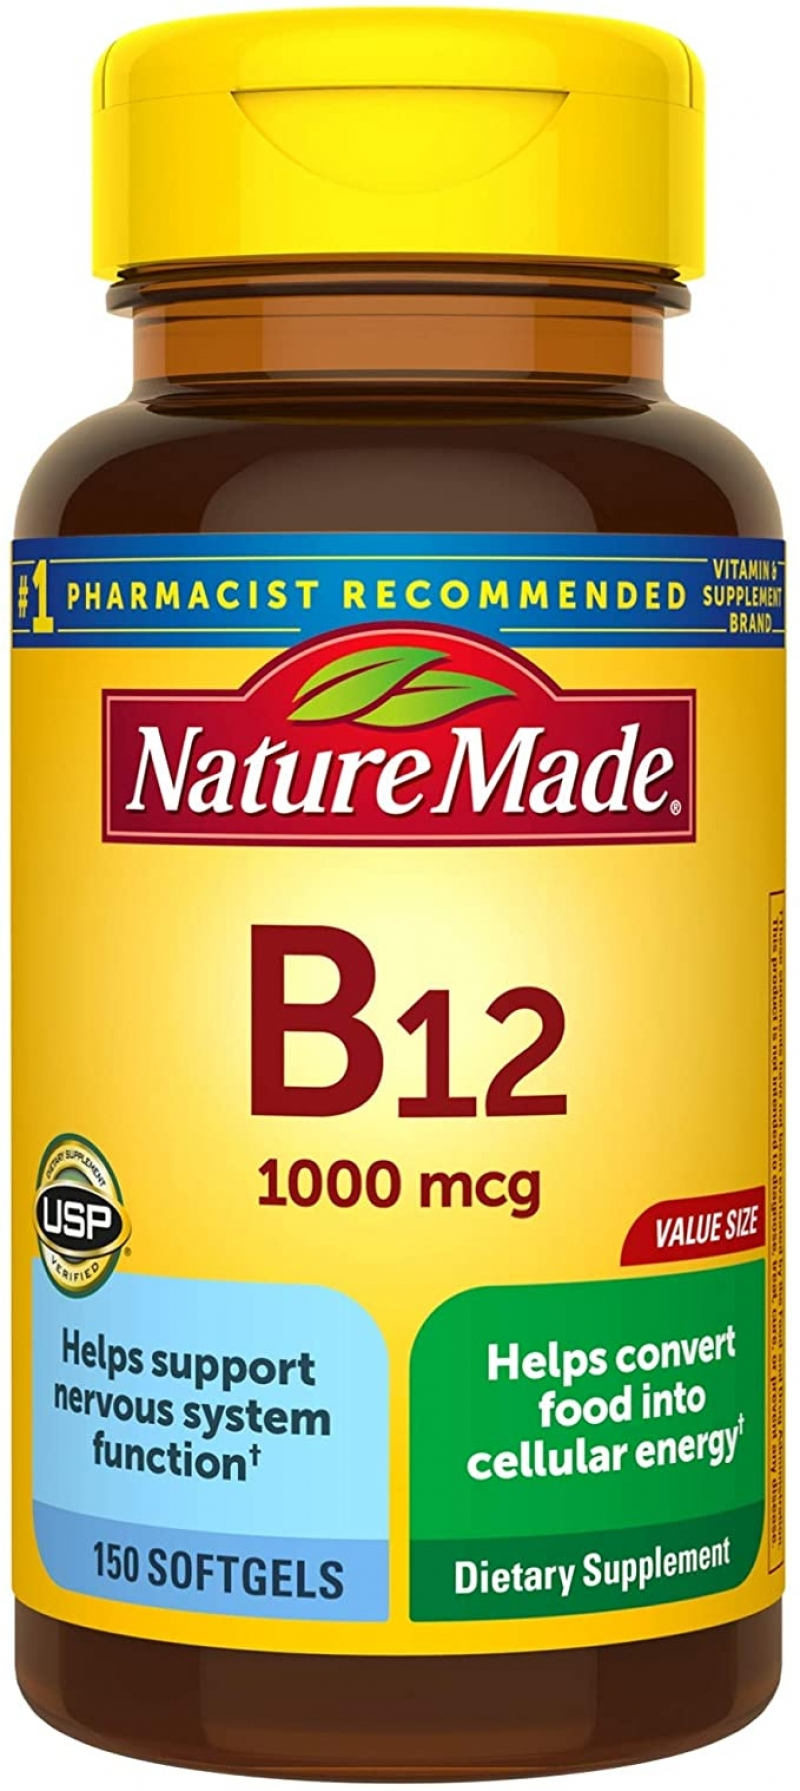 ihocon: Nature Made Vitamin B12 1000 mcg Softgels, 150 Count Value Size for Metabolic Health